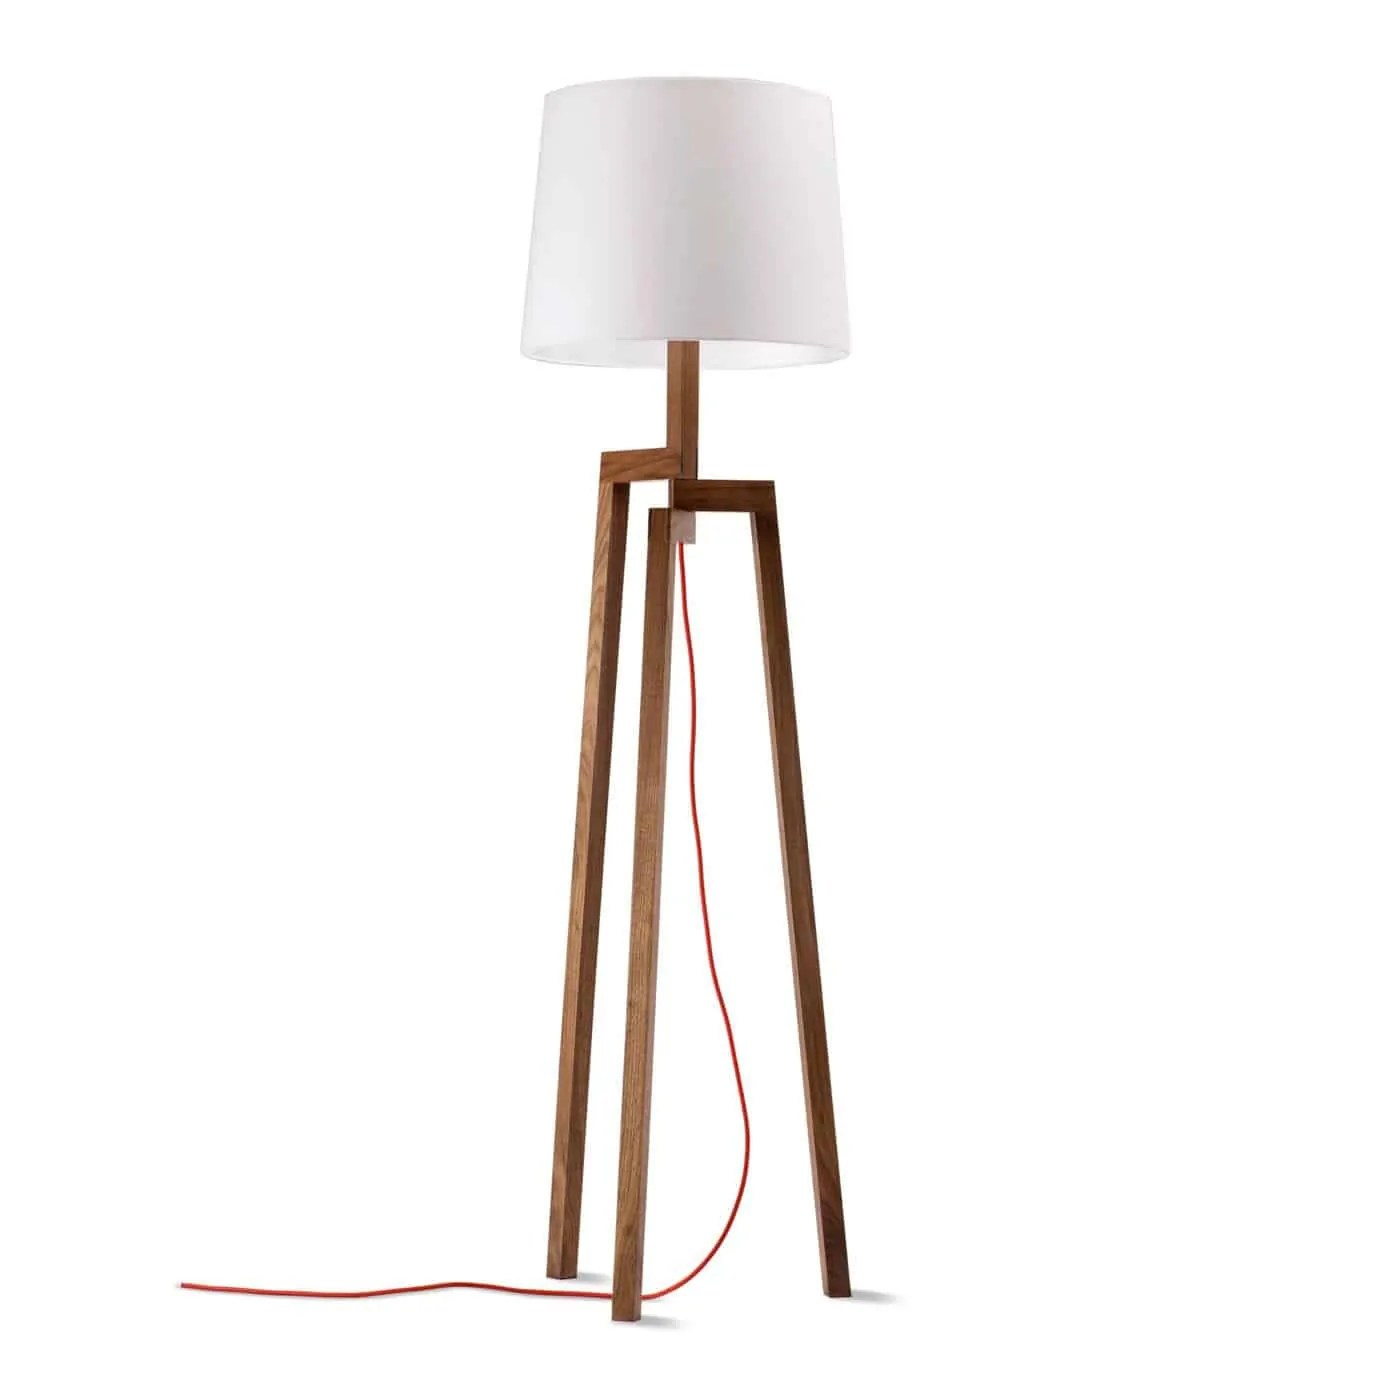 Minimalist Floor Lamp Know About Types Of Floor Lamps Decoration Channel